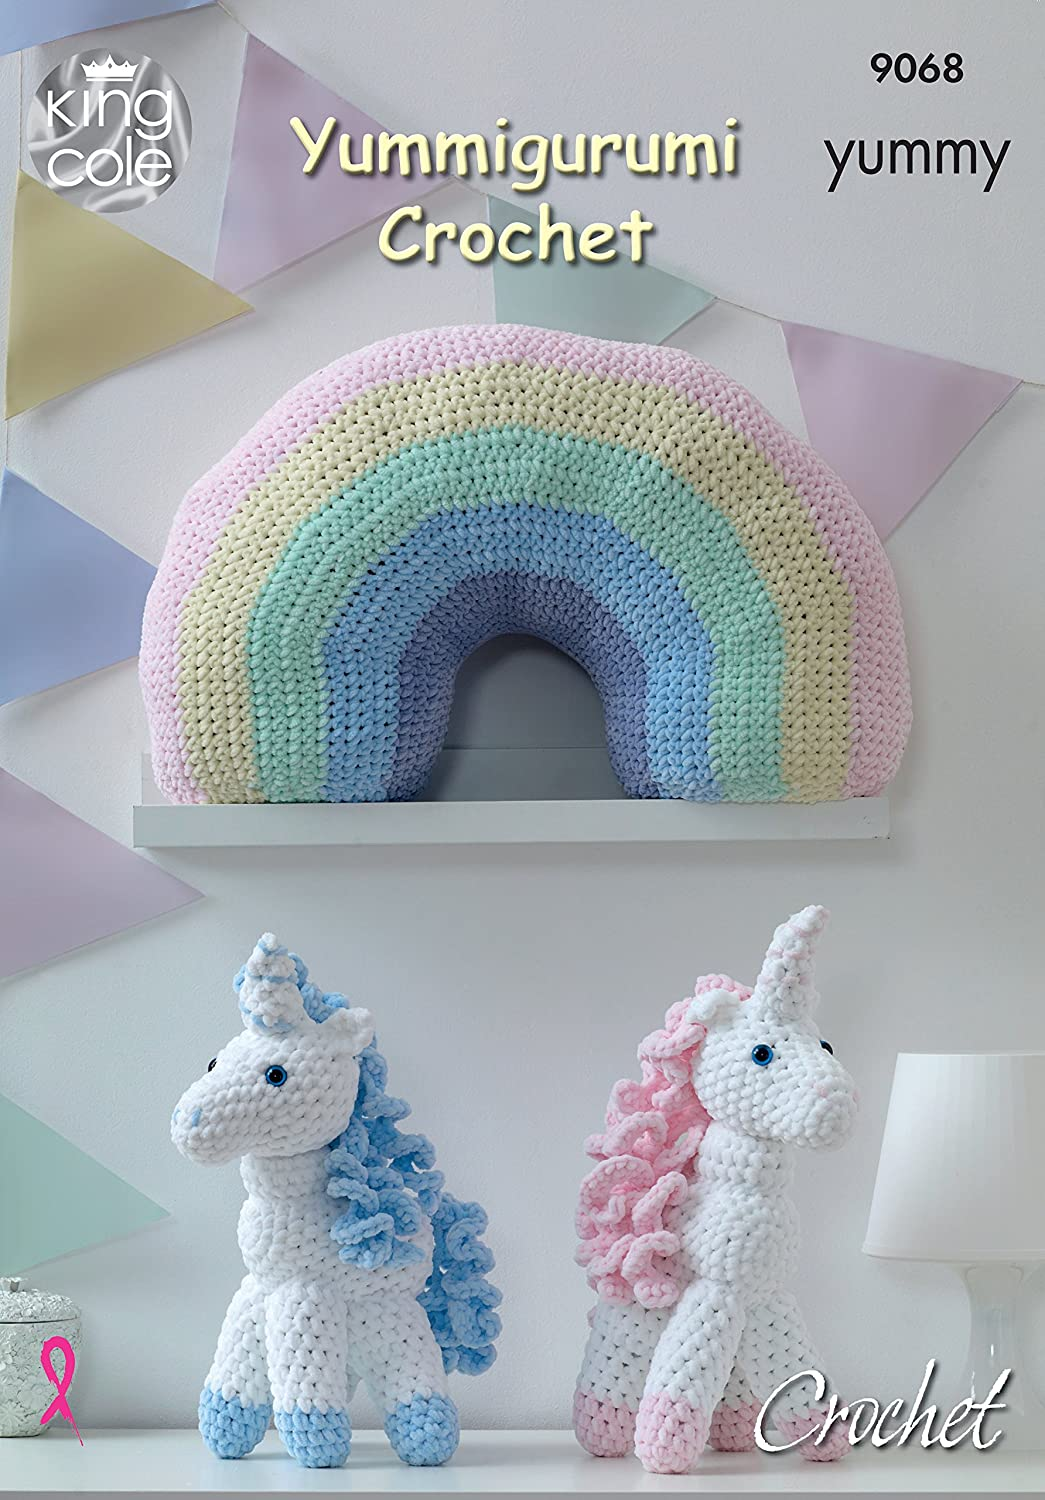 King Cole Knitting pattern 9068 Crochet Unicorn & Cushion: Amazon.co ...